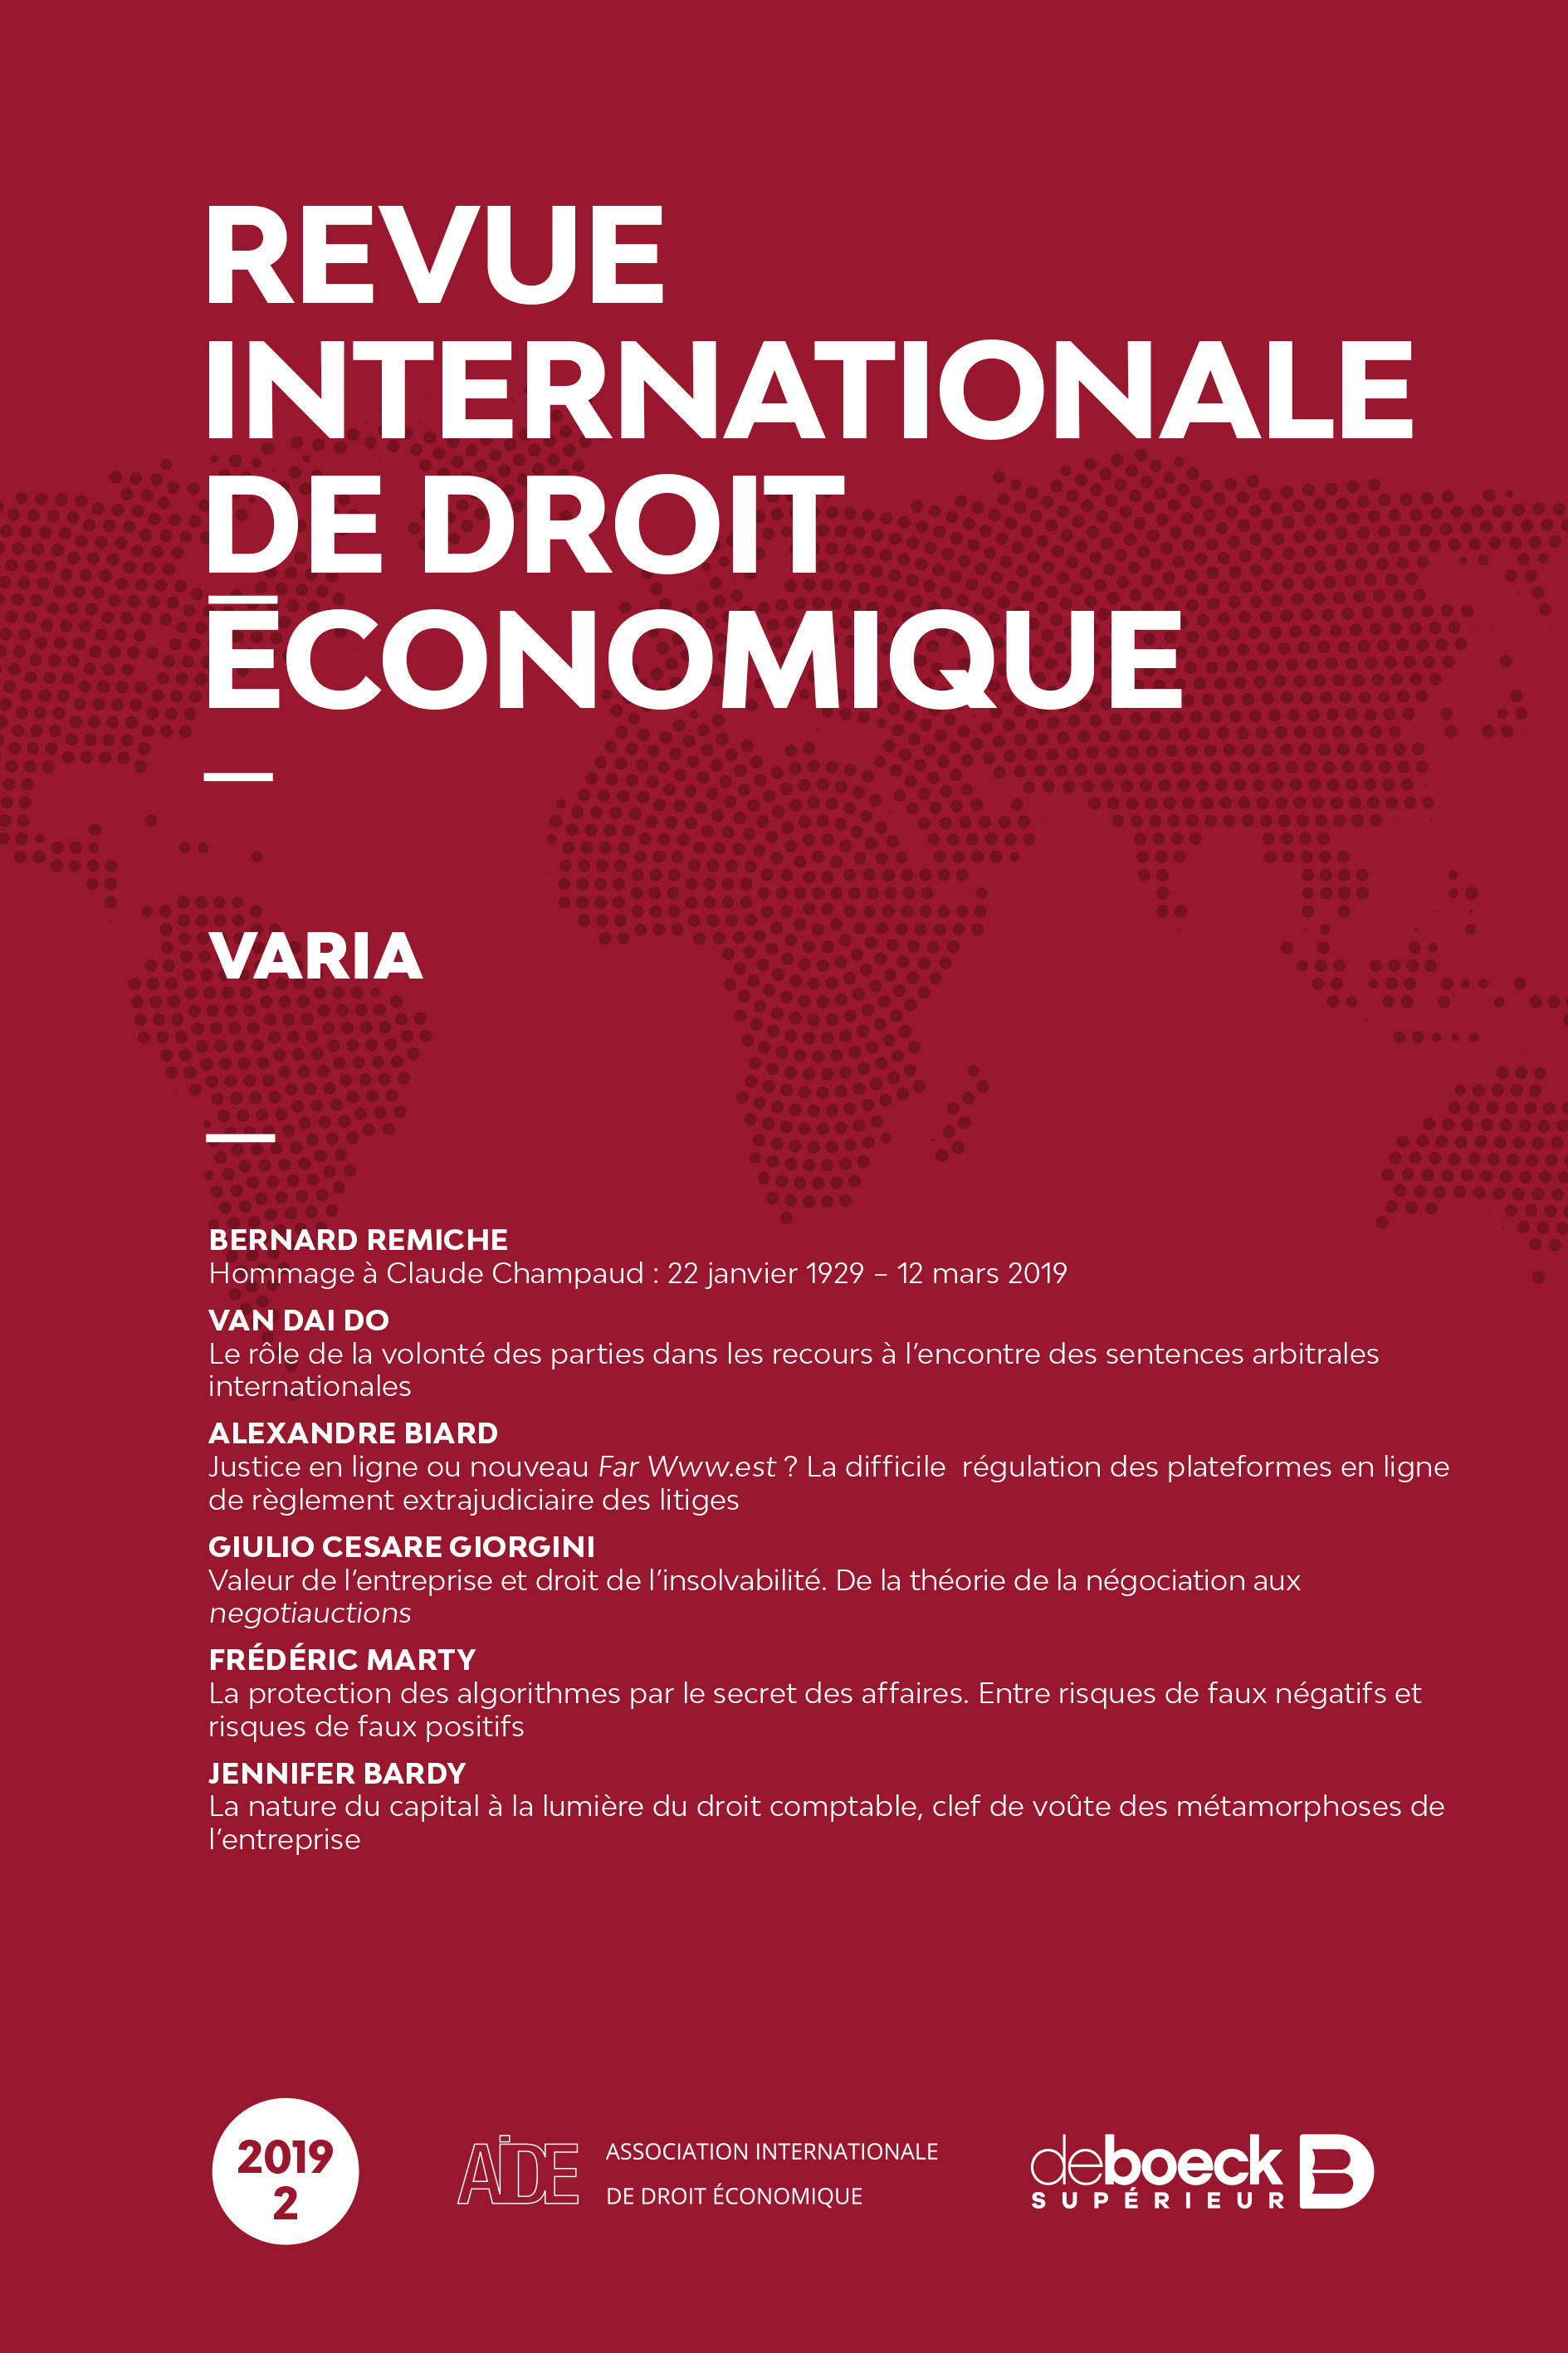 REVUE INTERNATIONALE DE DROIT ECONOMIQUE 2019/2 - VARIA